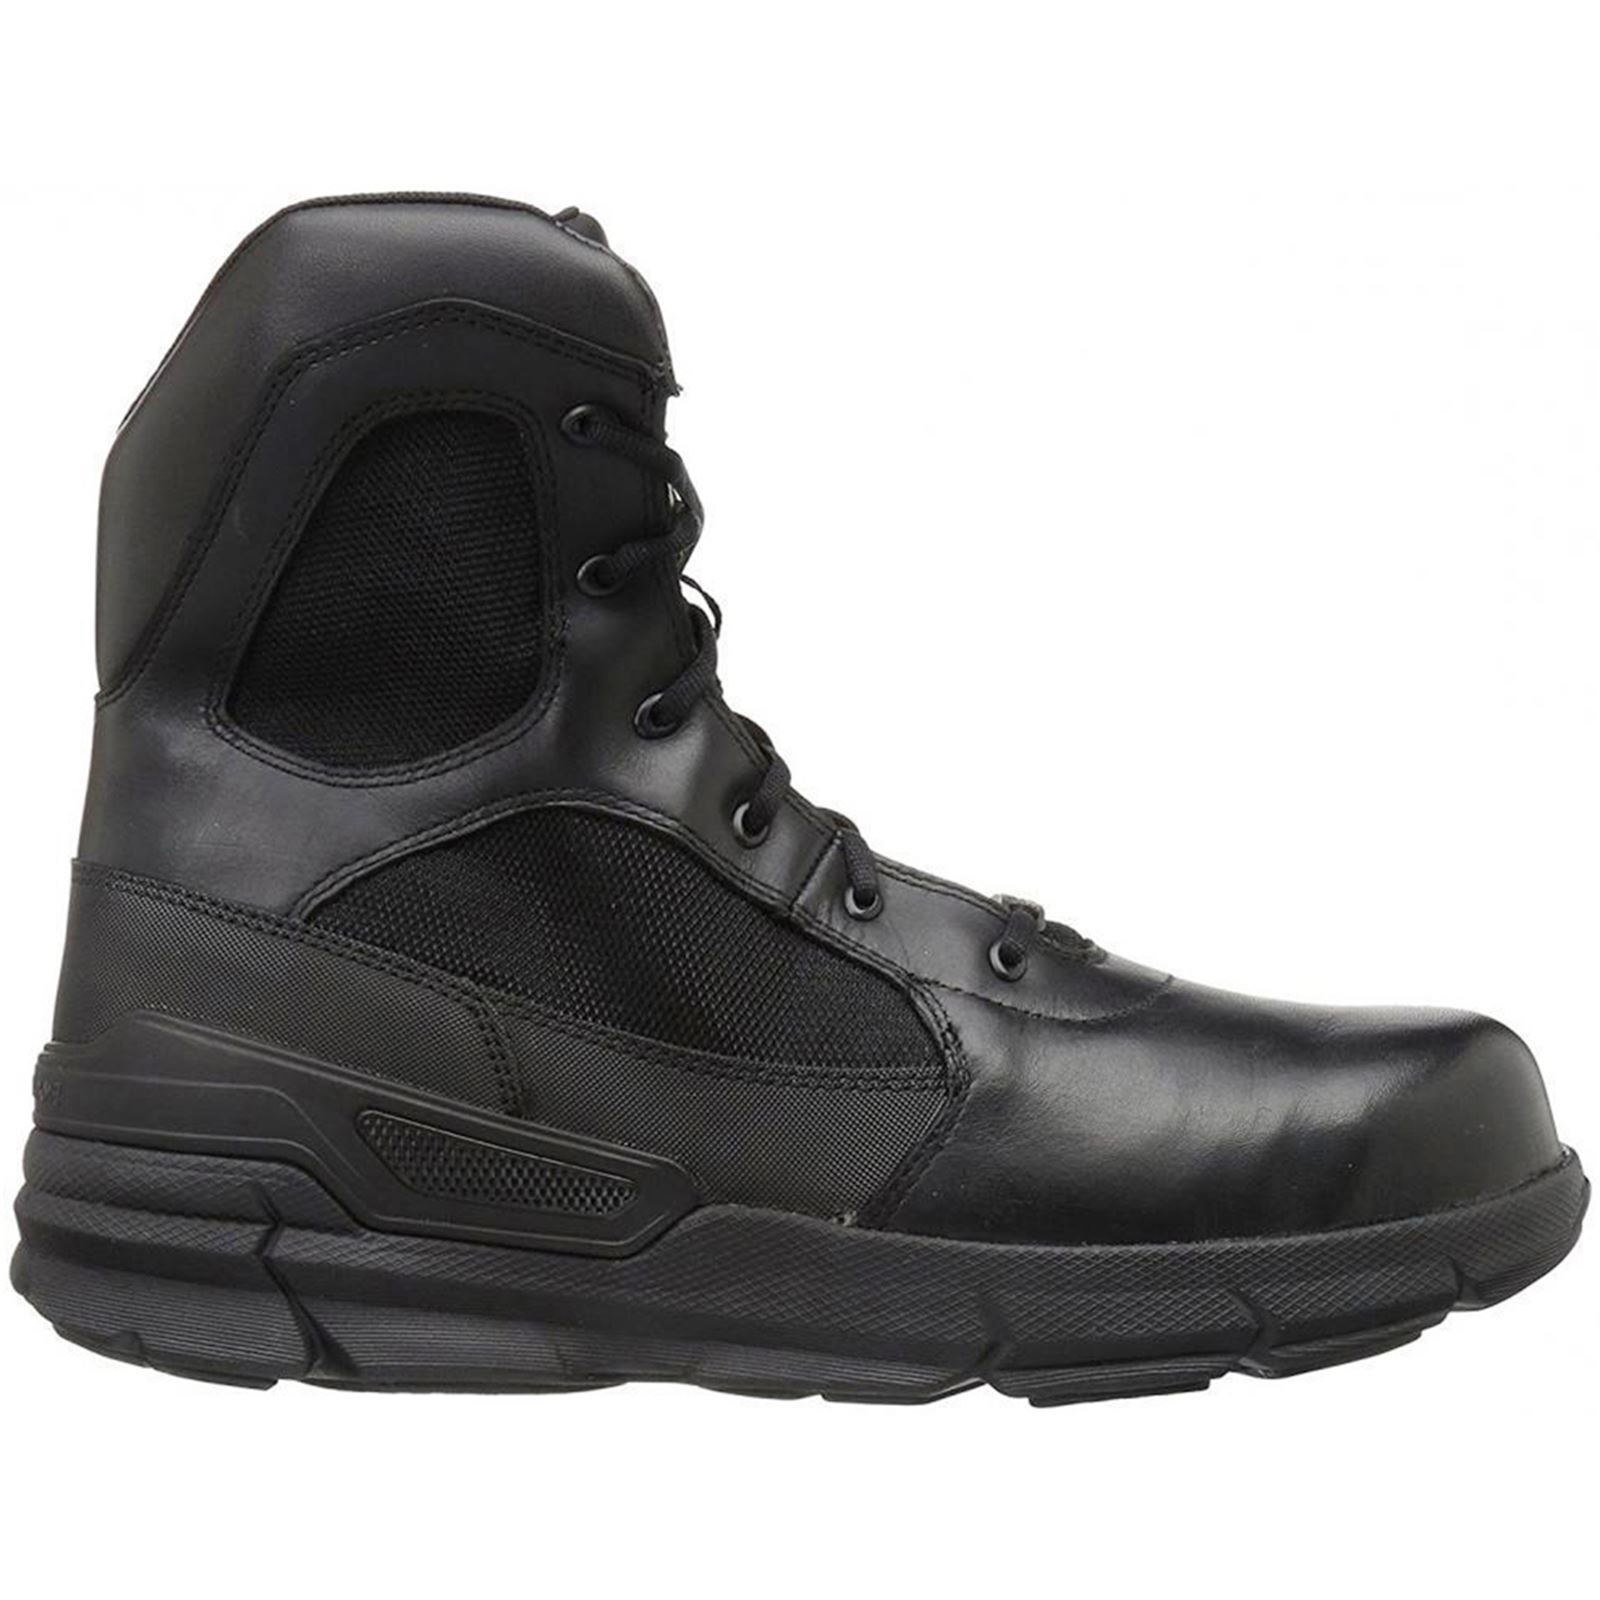 Bates Charge Composite Toe Side Zip Black Mens Leather Military Tactical Boots